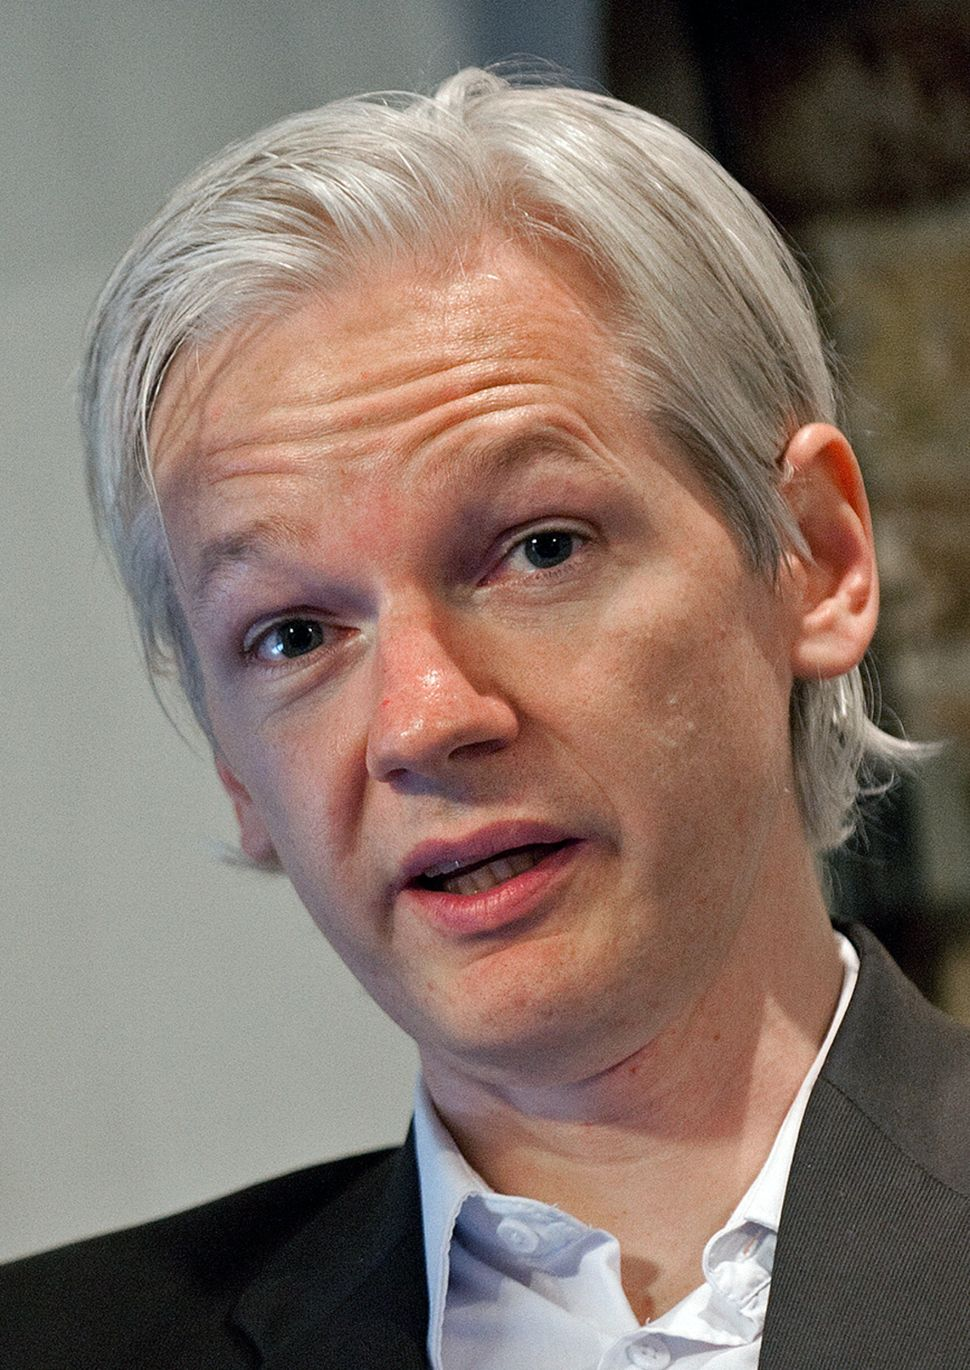 WikiLeaks' Julian Assange Will Leave The Ecuadorian Embassy When He Feels Like It